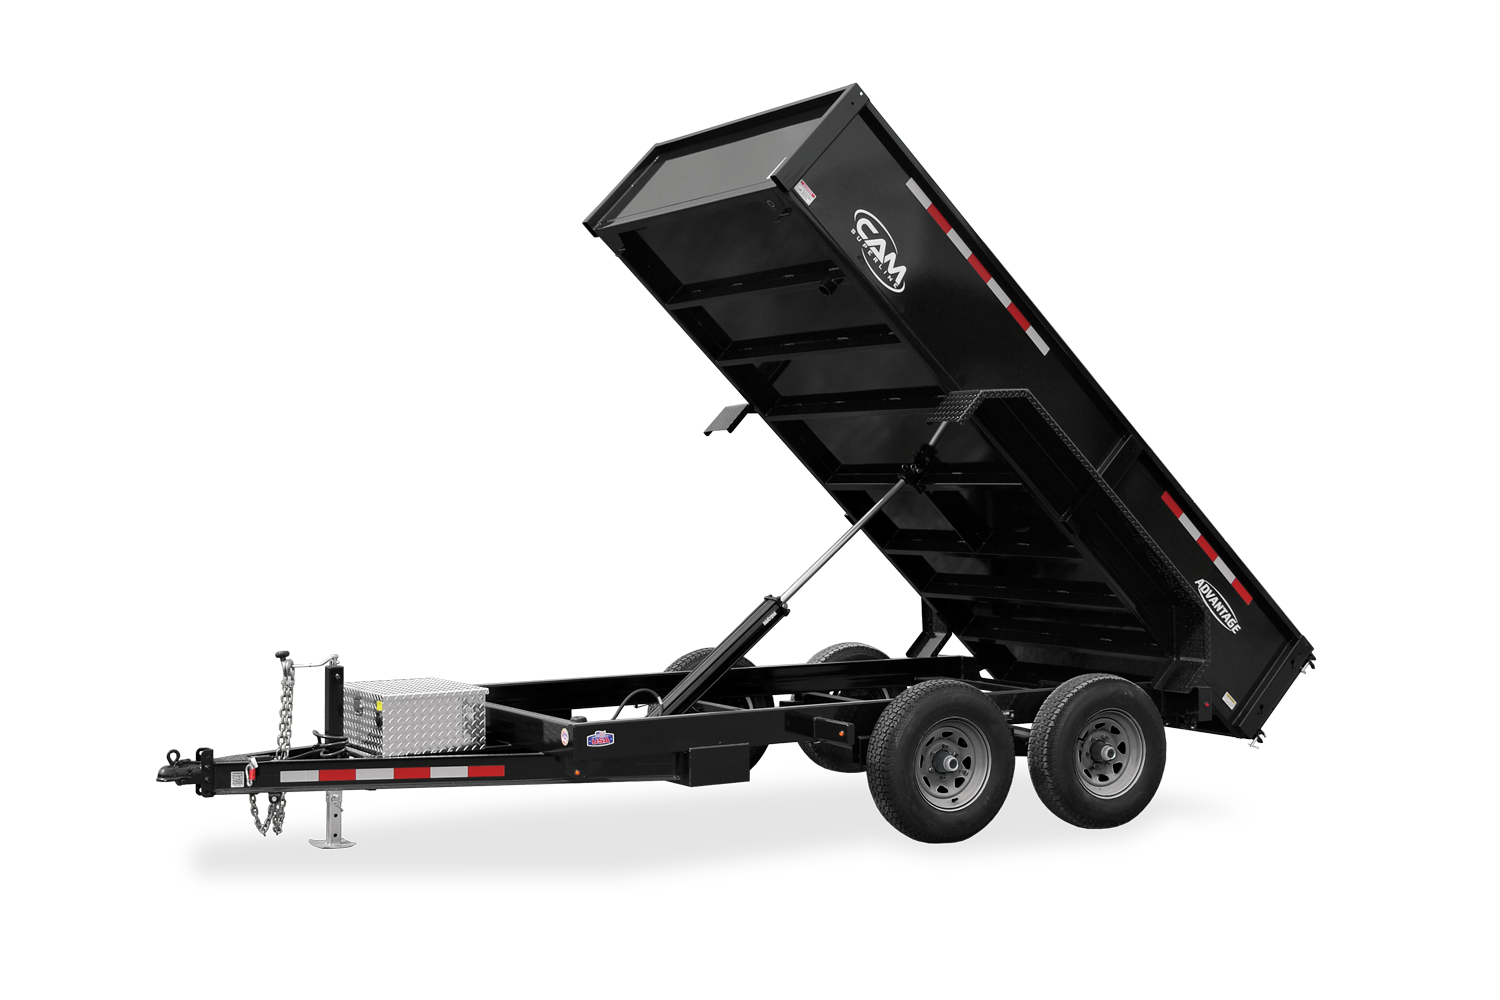 2020 Cam Superline 3.5 Ton Advantage Low Profile Dump 5x10